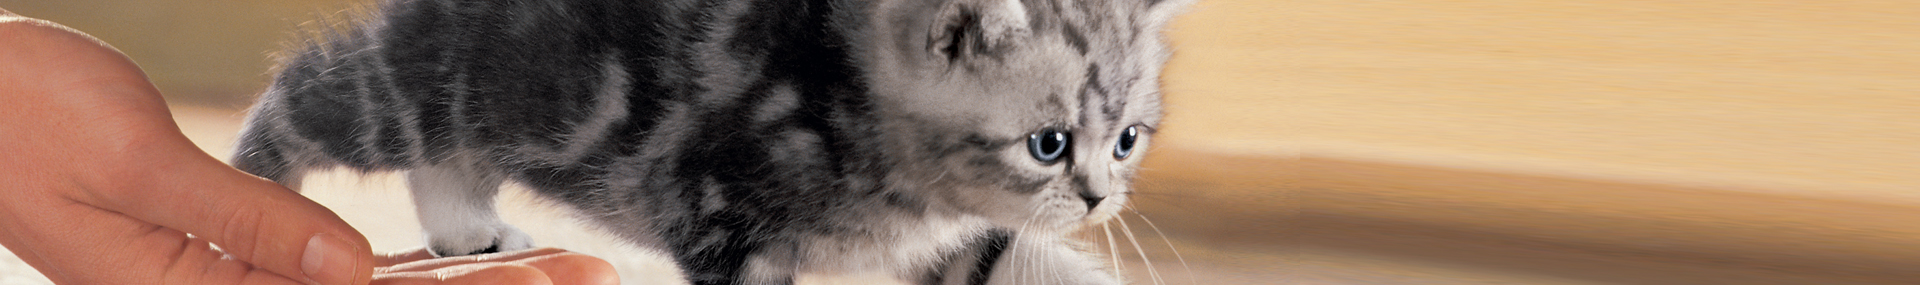 Whiskas® Kitten adopter-un-chaton